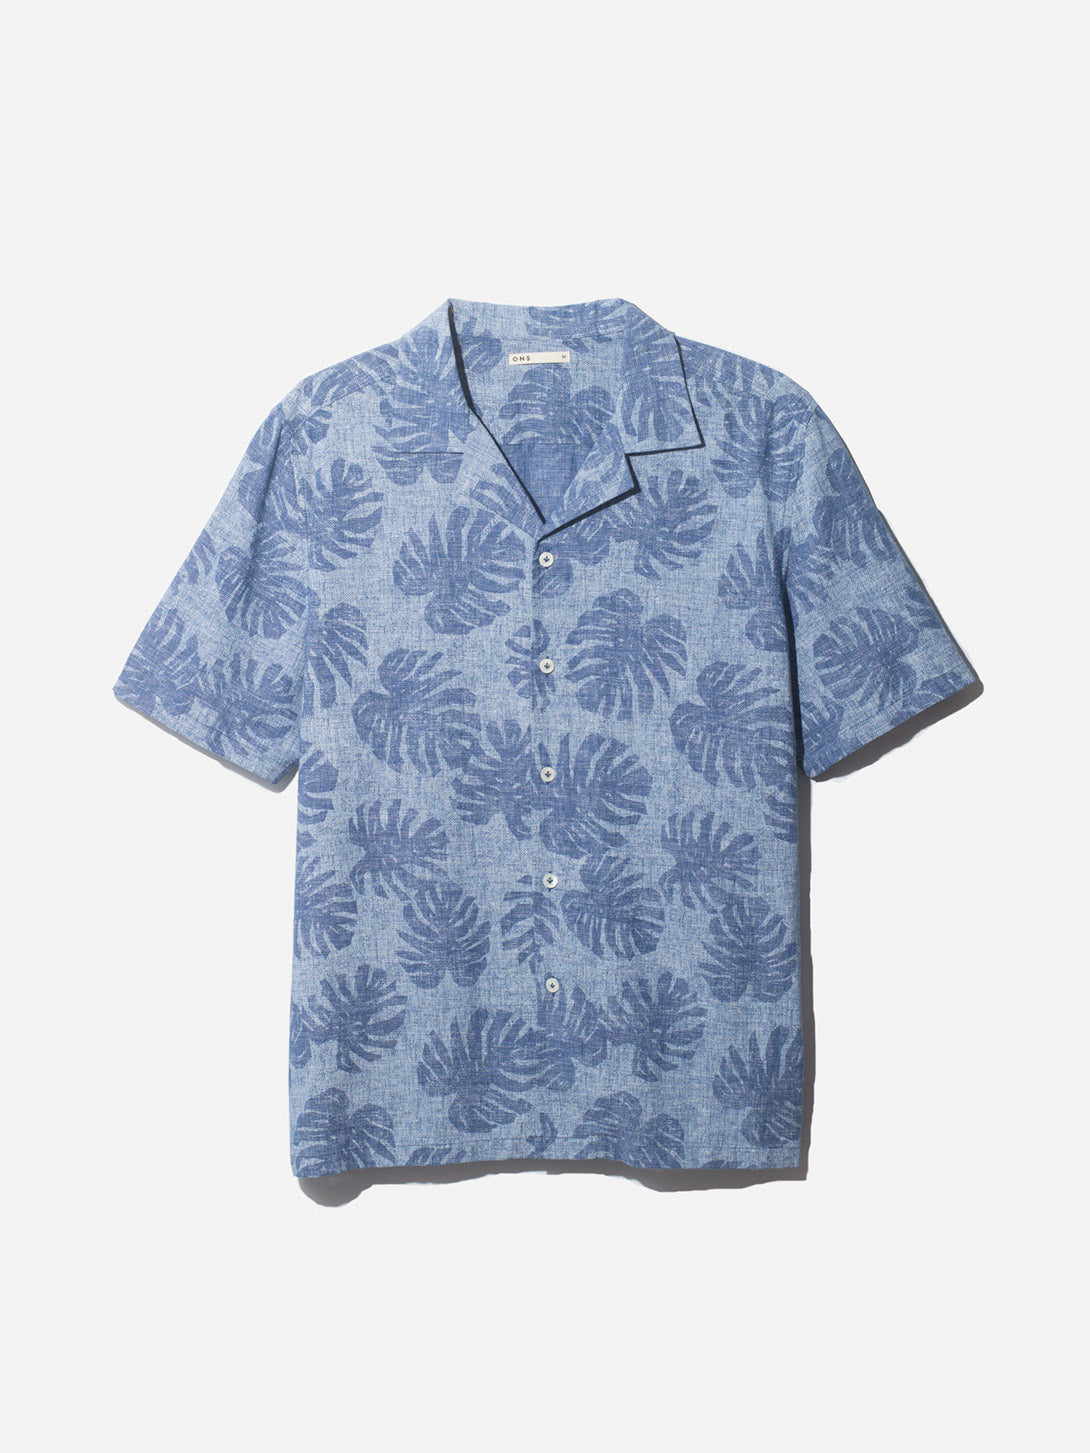 ROCKAWAY PRINT SHIRT INDIGO ONS CLOTHING